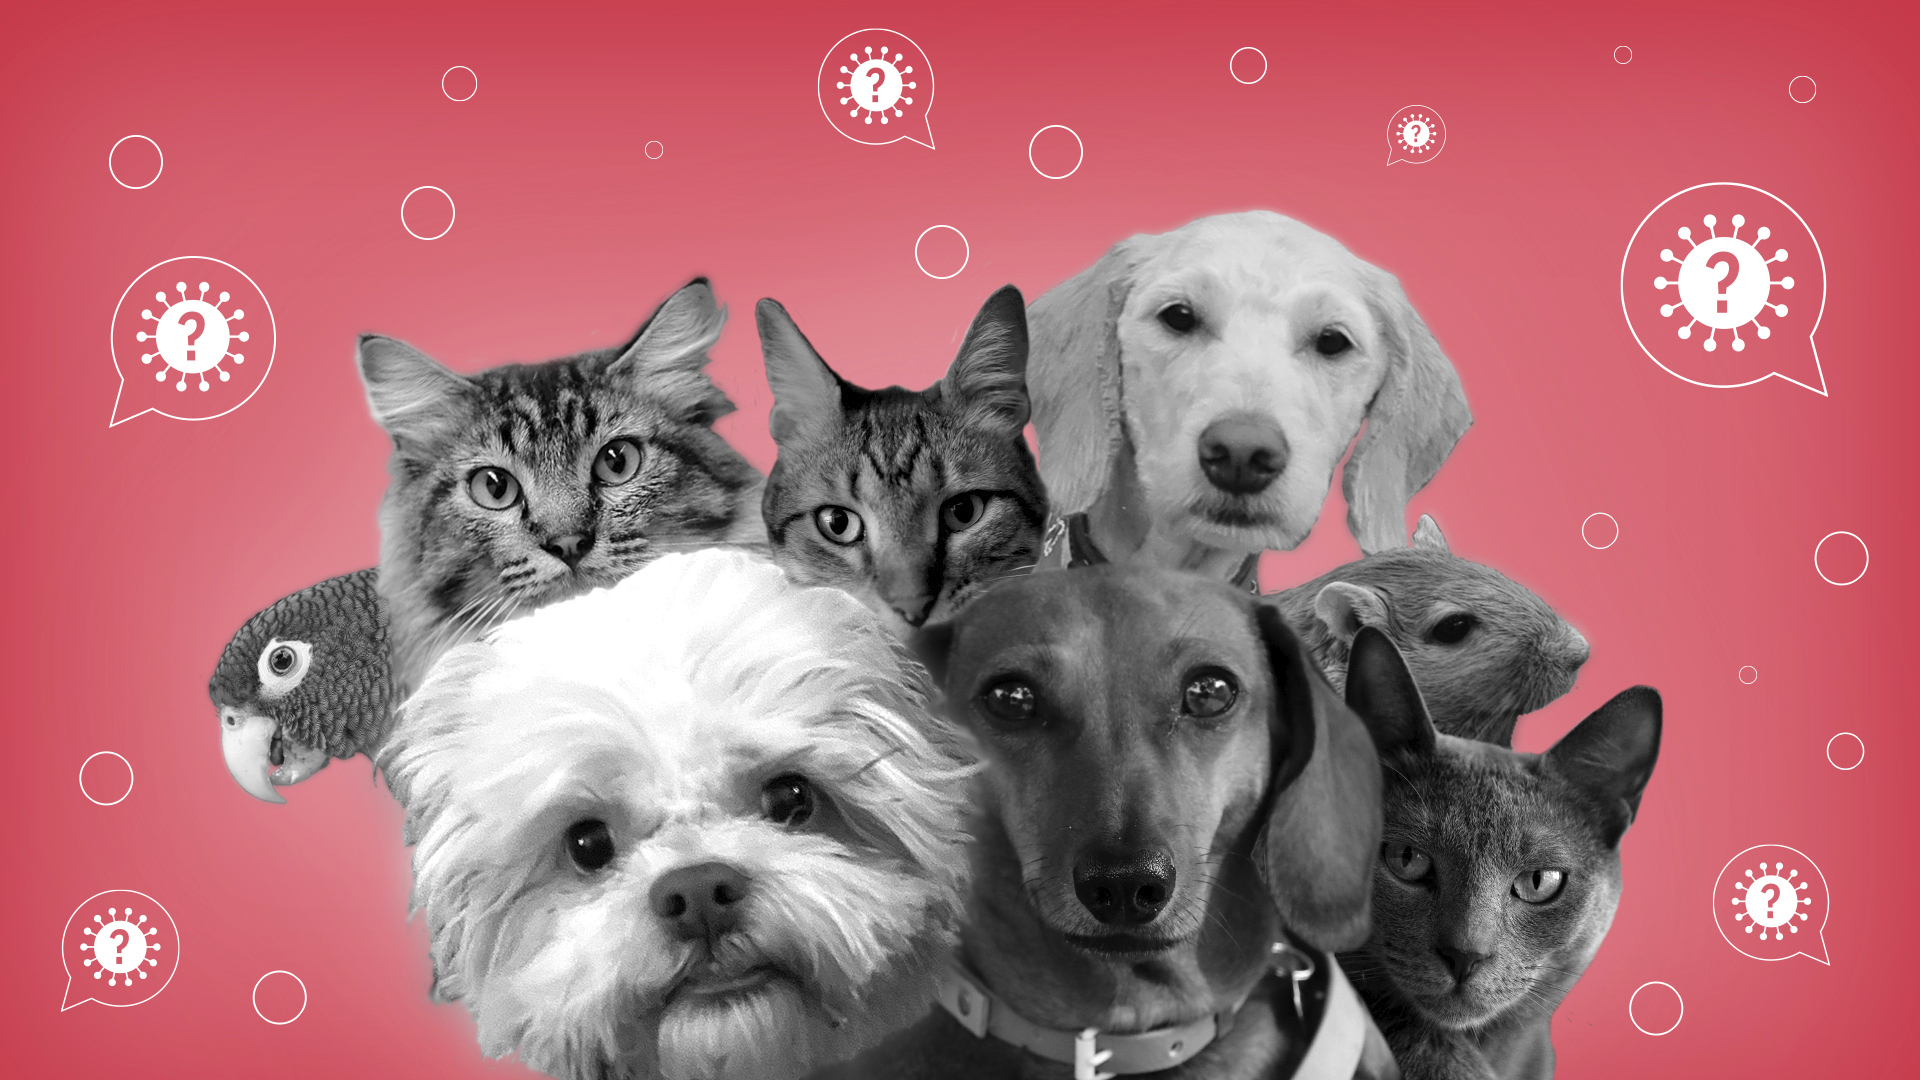 VIRUS OUTBREAK VIRAL QUESTIONS PETS